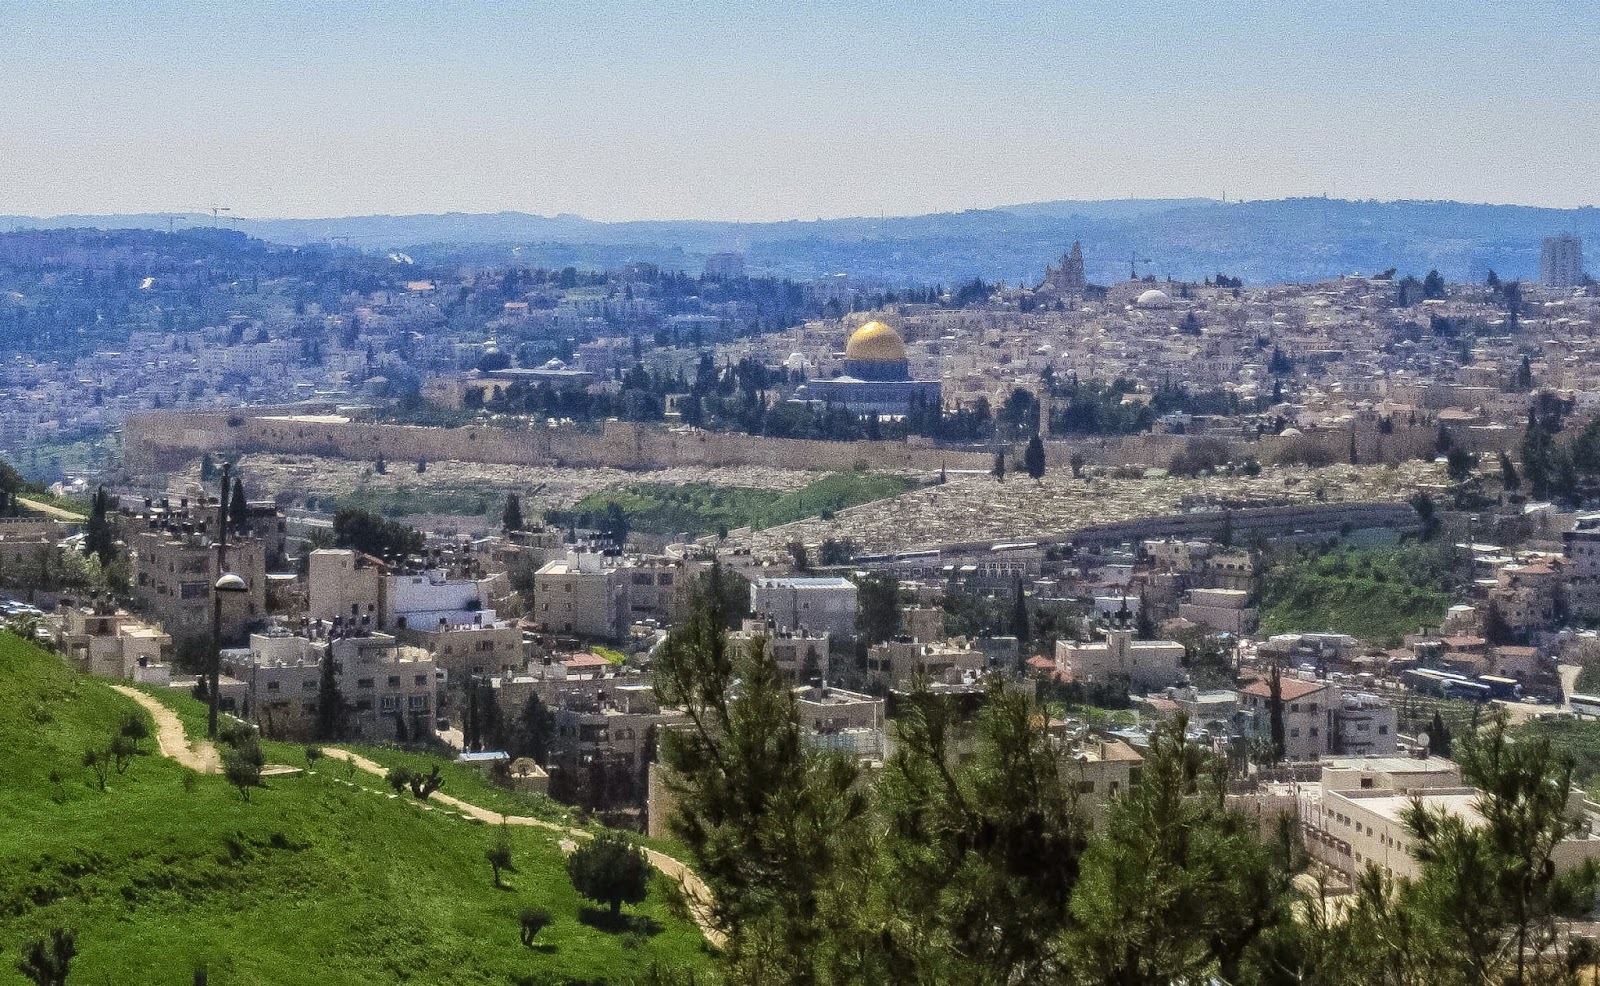 Jerusalem from the Mount of Olives / Souvenir Chronicles